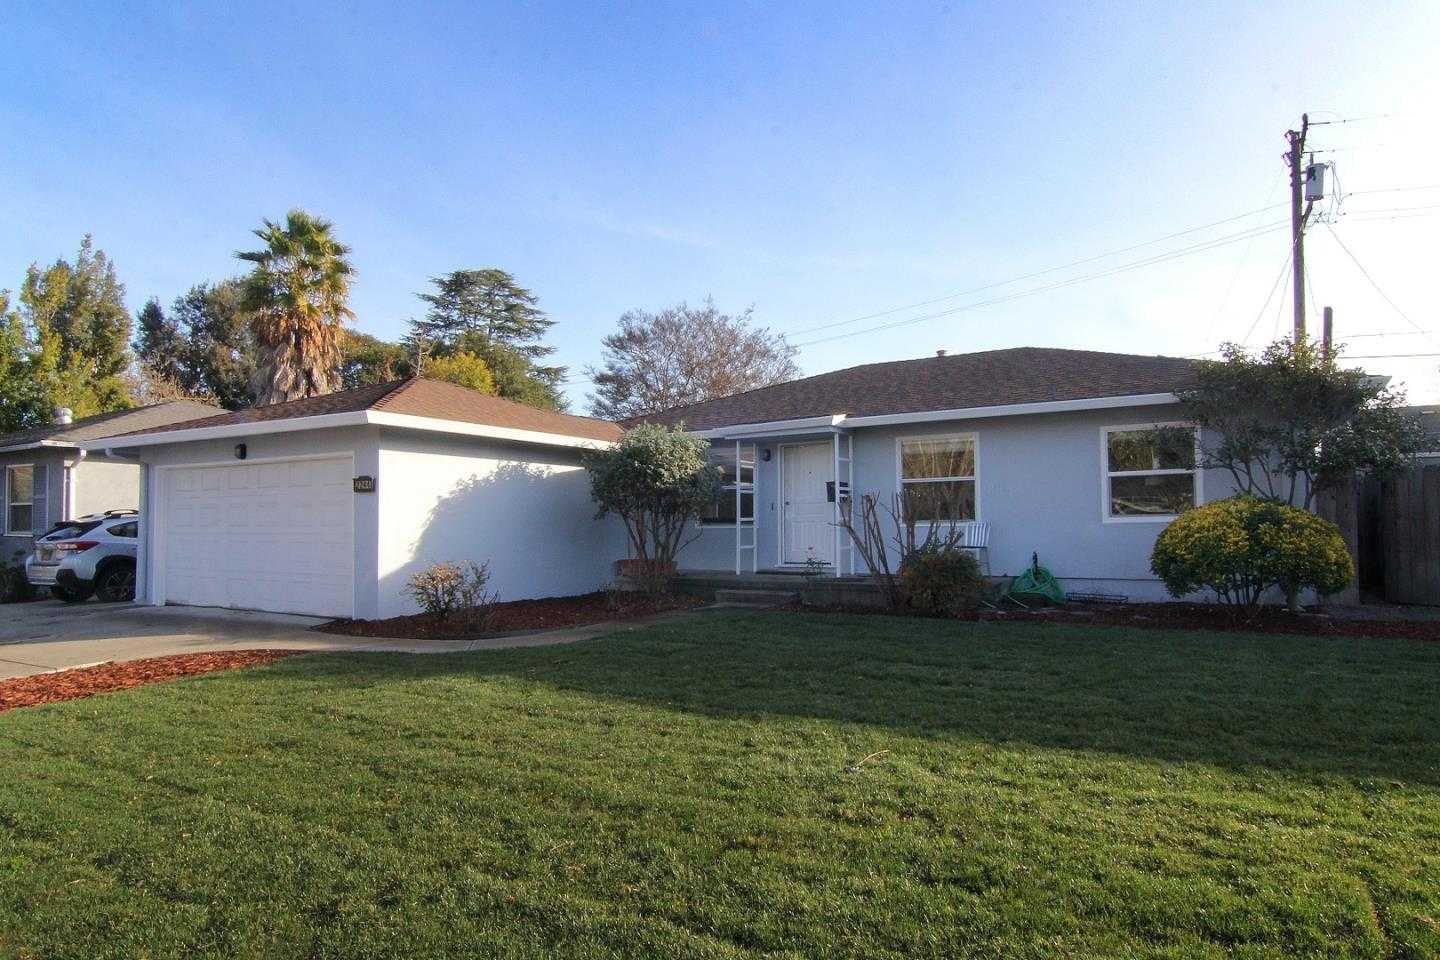 $1,149,000 - 3Br/1Ba -  for Sale in San Jose